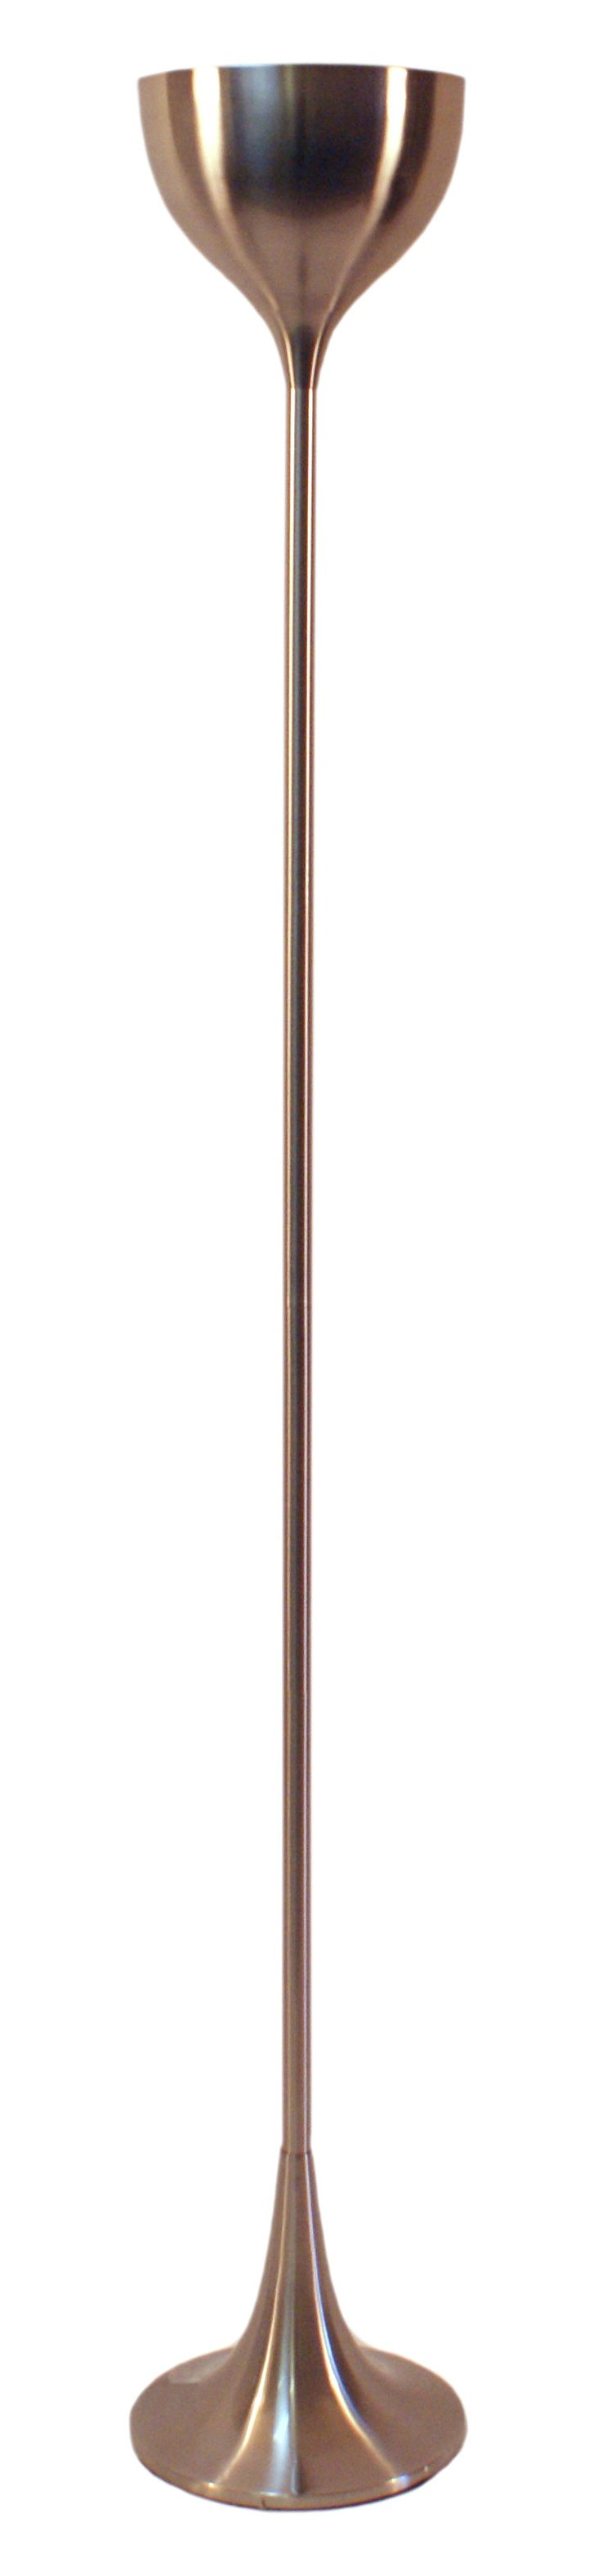 Victoria Floor Lamp, Nickel